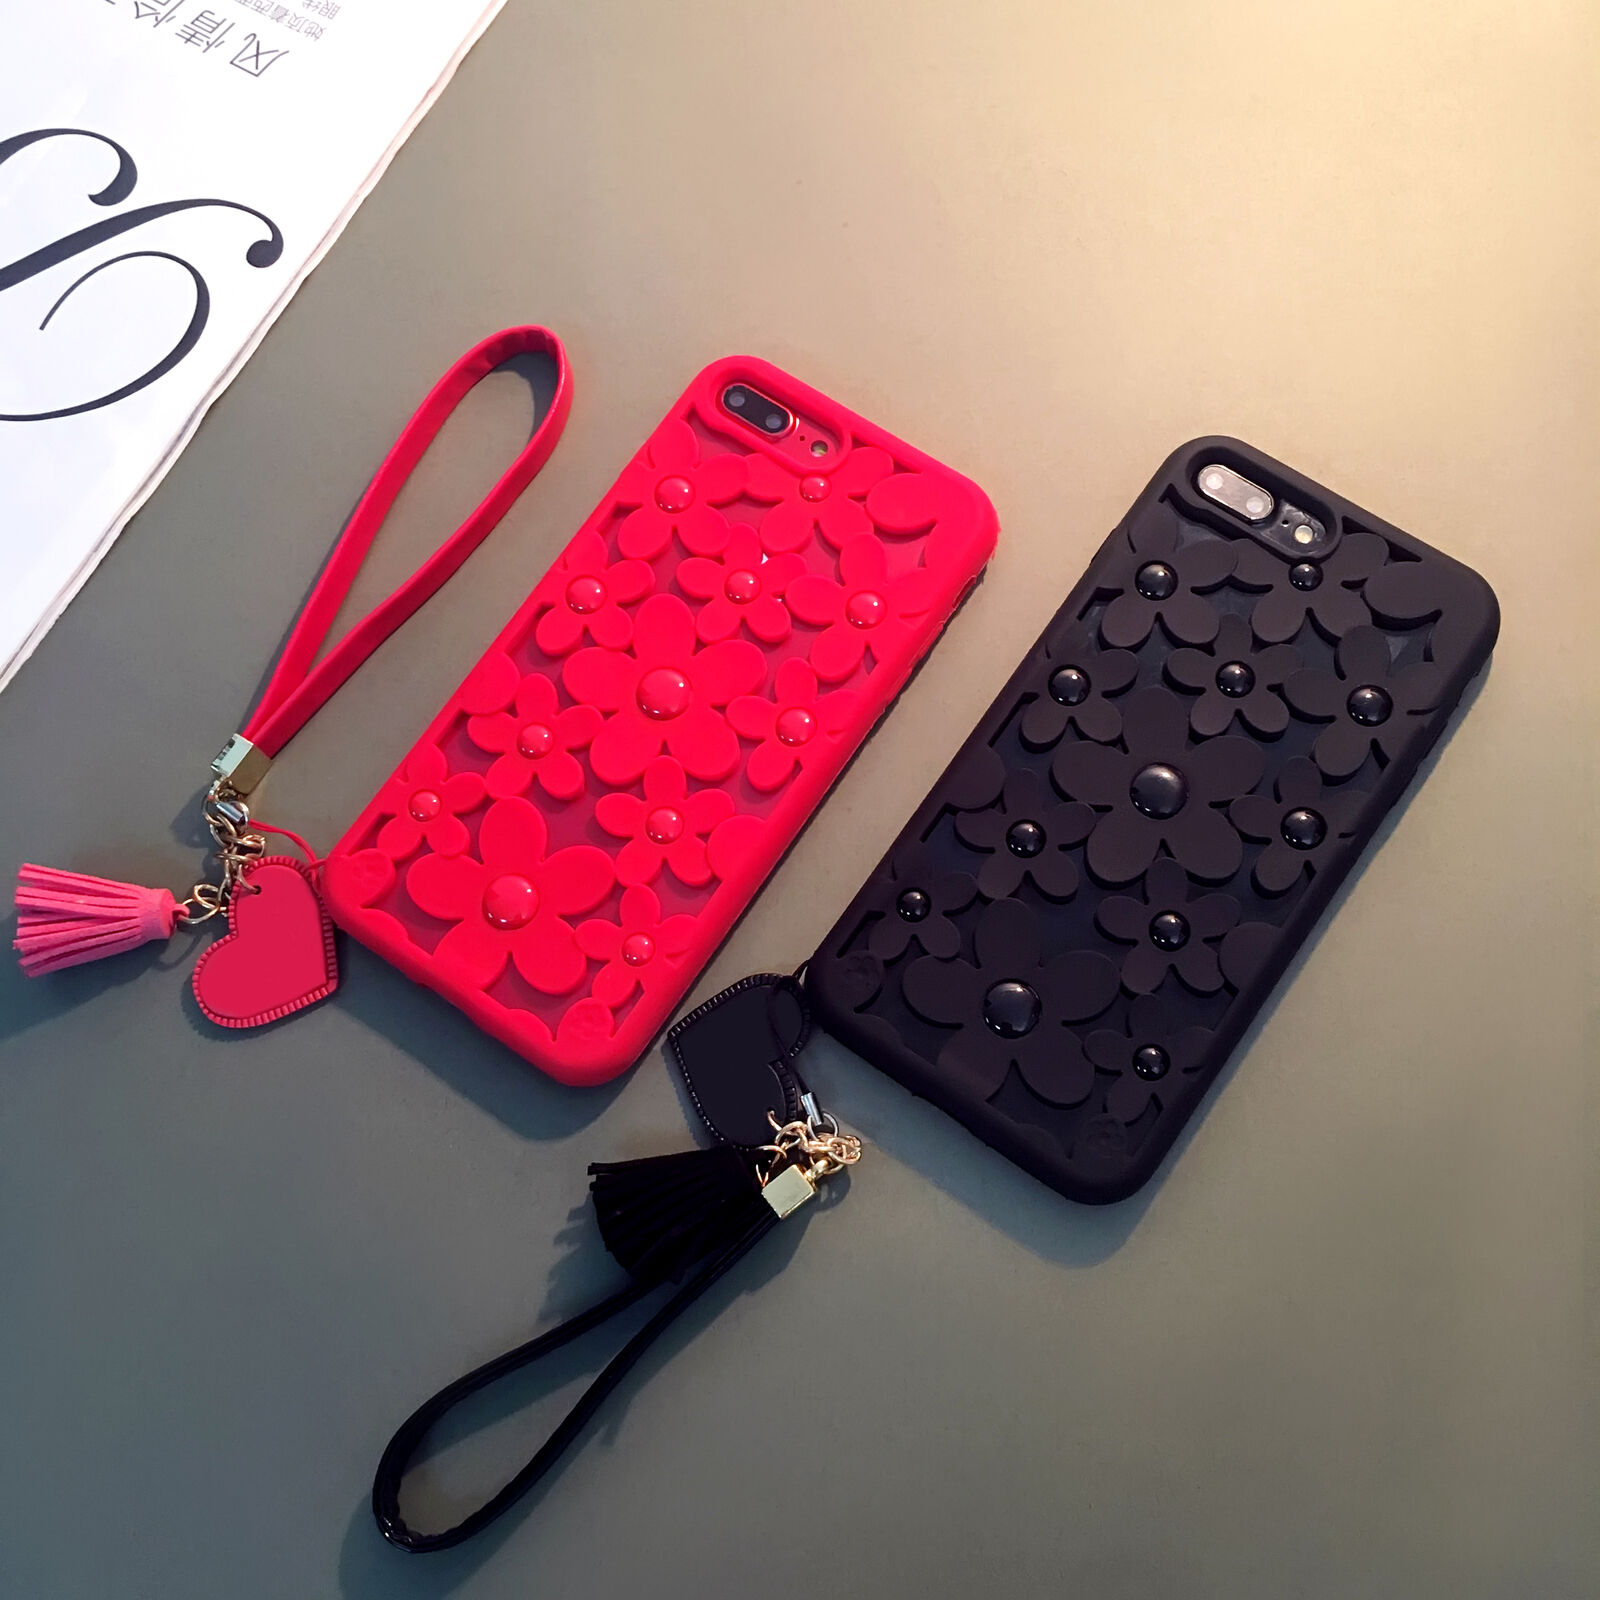 3D Hollow Daisy Soft Phone Case with Love  tassel Strap For